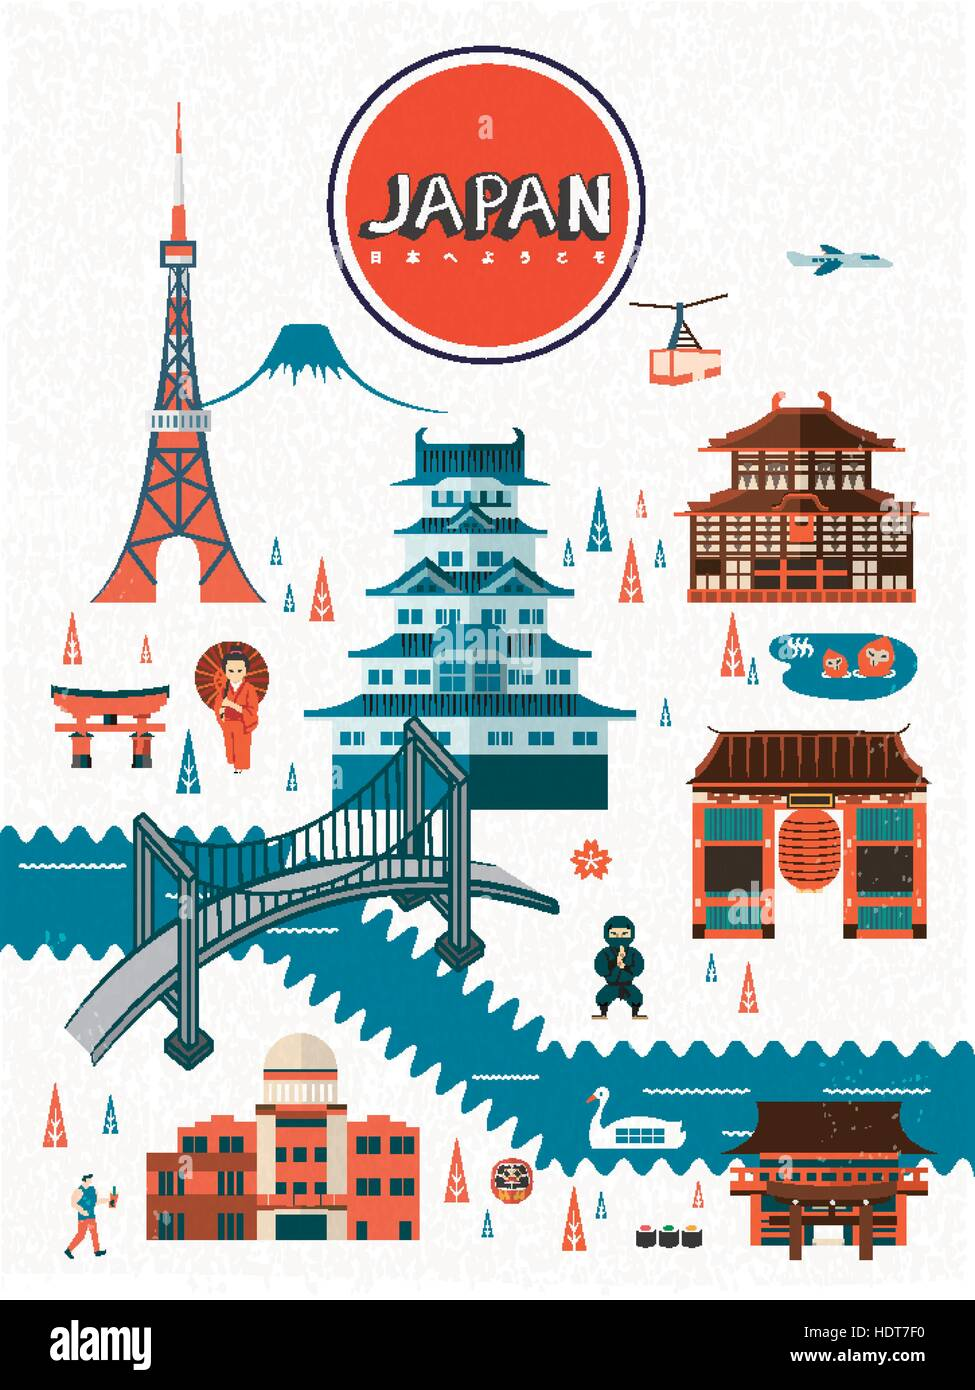 Exquisite Japan Travel Poster Design Welcome To Japan In Japanese Stock Vector Image Art Alamy